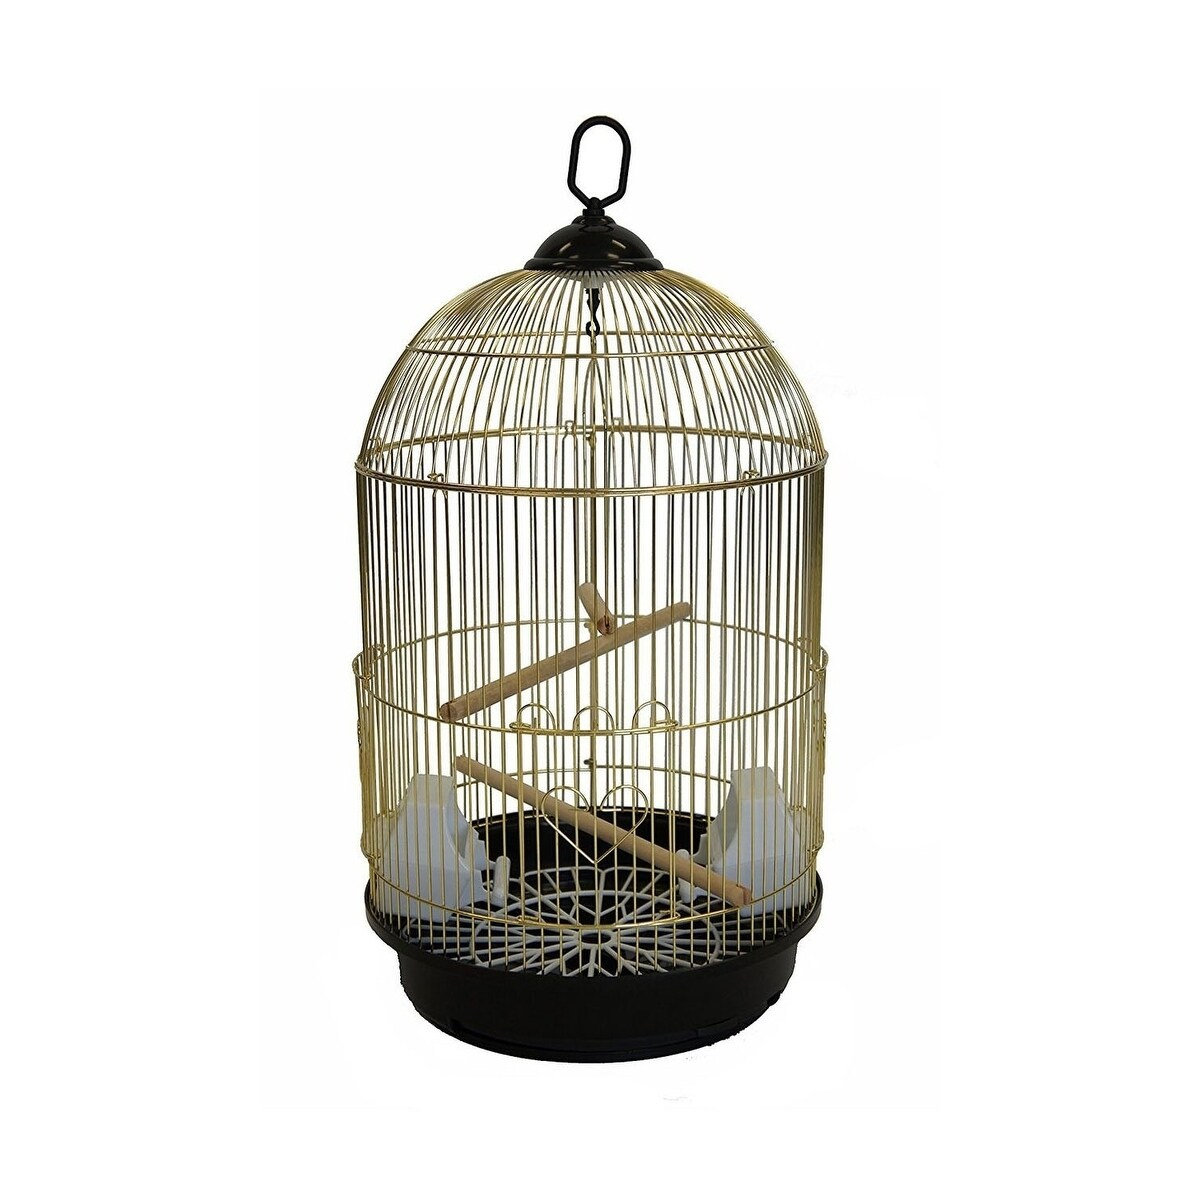 Shop yml a1564brass bar spacing round bird cage with removable plastic tray small brass free shipping today overstock 22744334